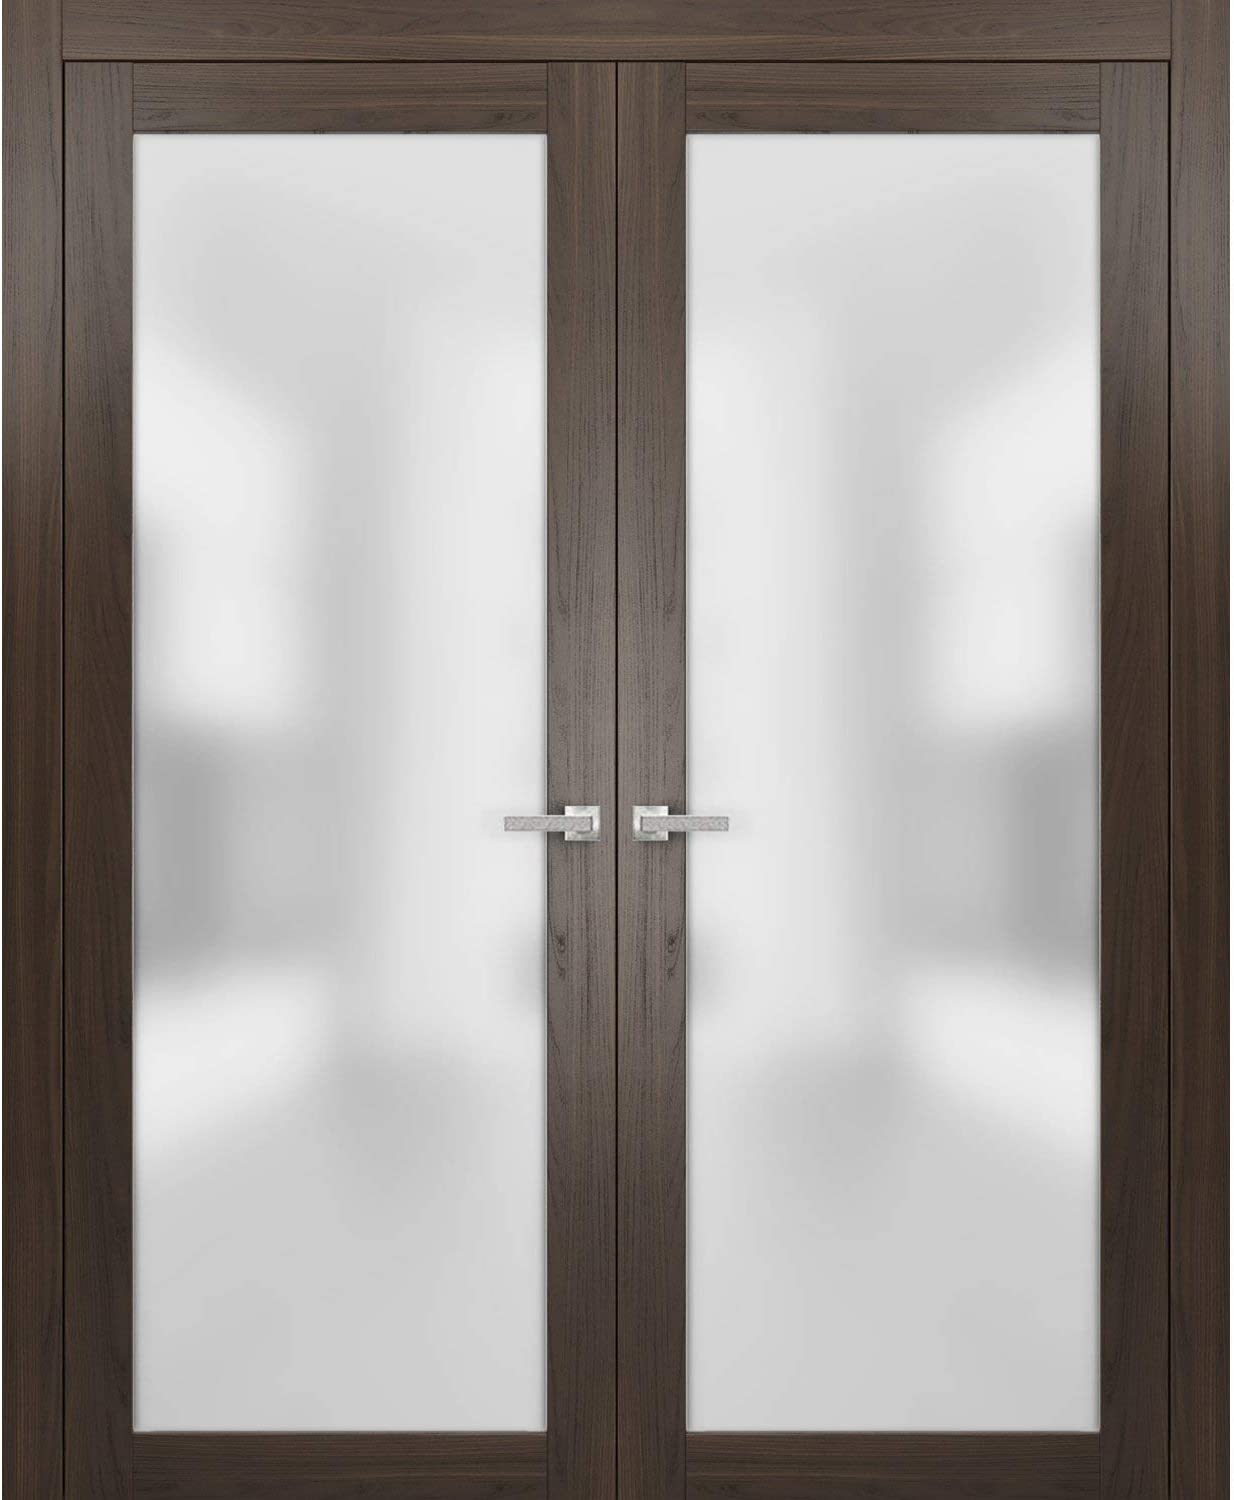 French Lite Frosted Glass Doors 36 x 80 Bedroom Hall Solid Core Wooden Panels Frames Trims Satin Nickel Hardware Planum 2102 Chocolate Ash